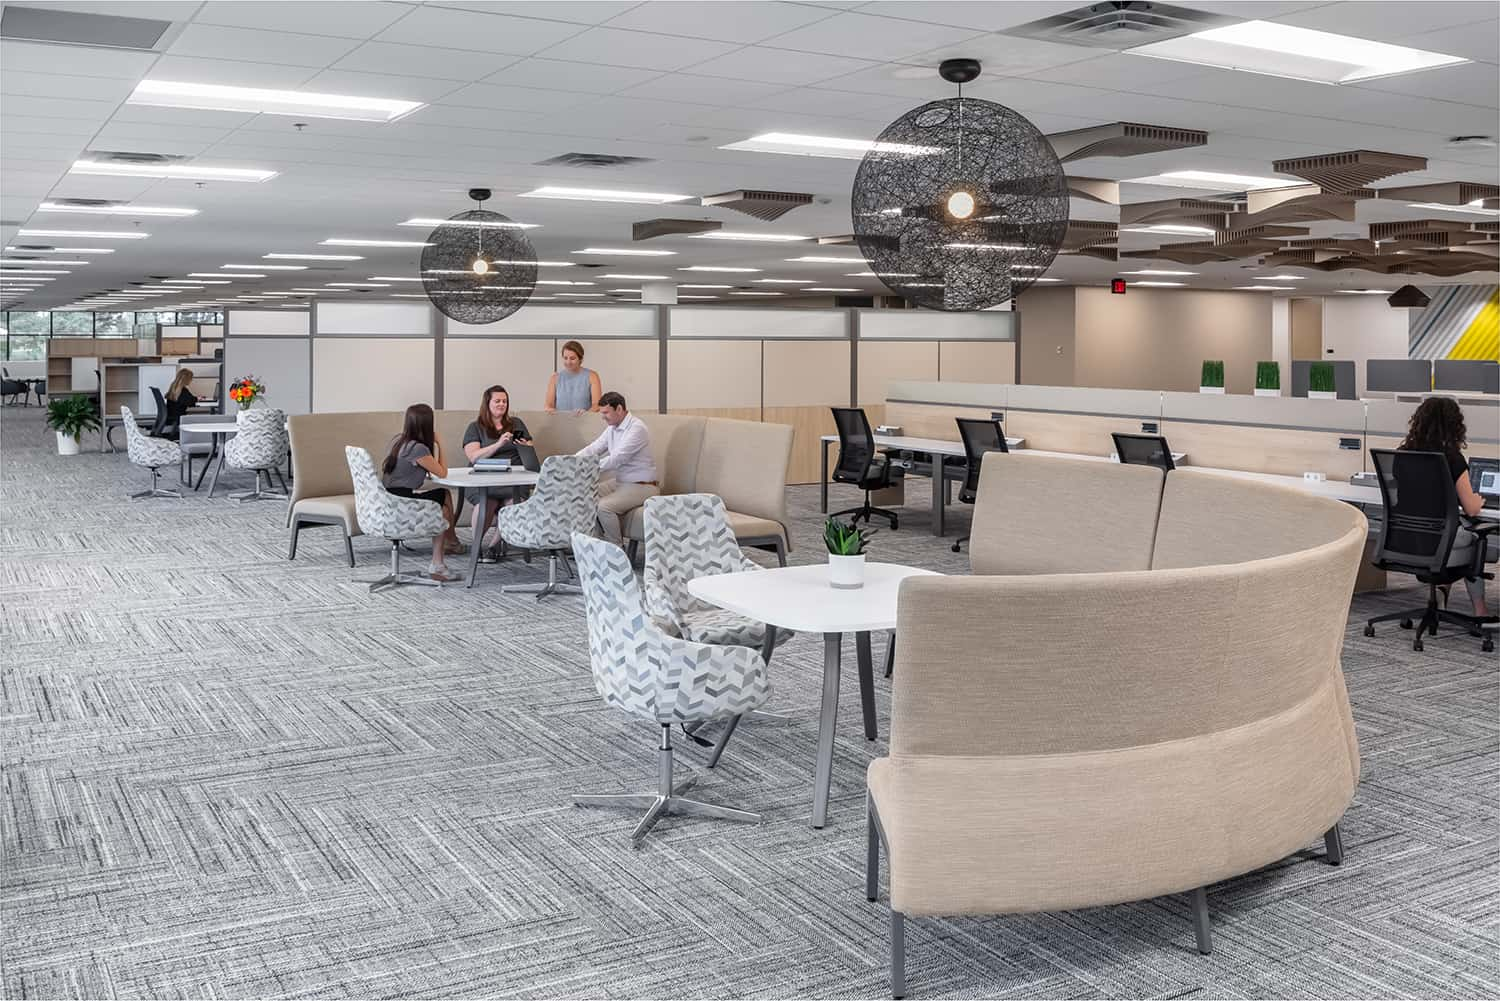 Semi-private workspace with touchdown seating and mid-height cubicles.